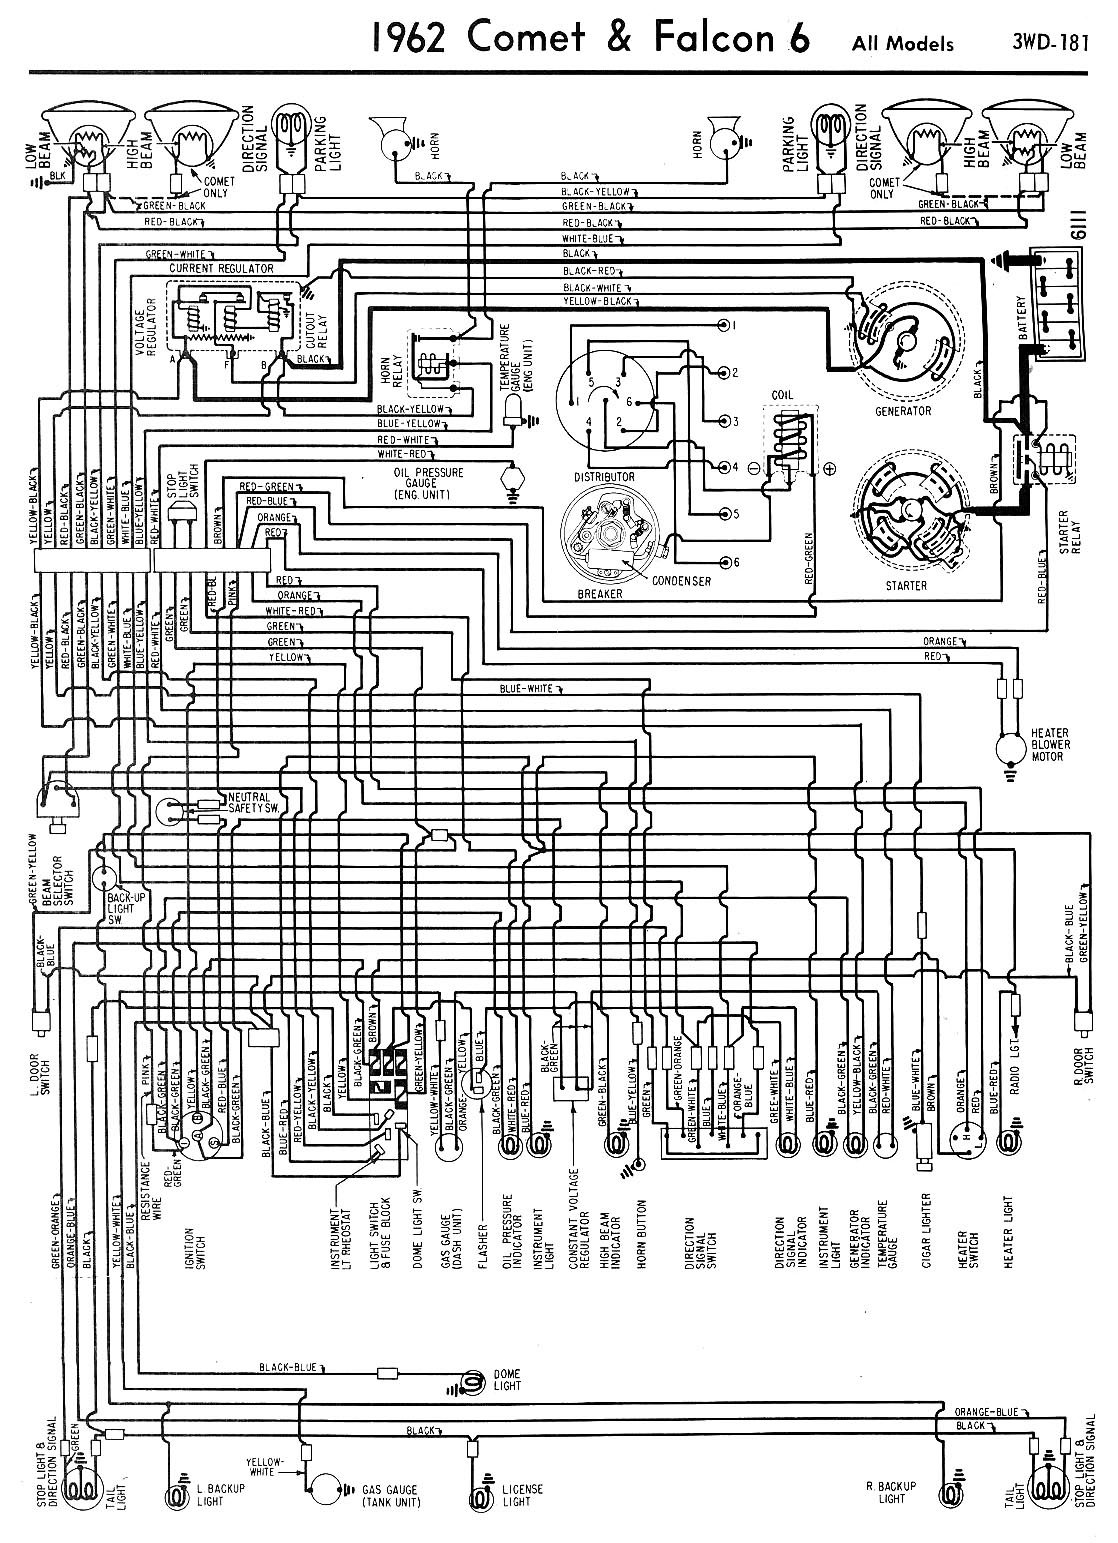 1963 Ford Ranchero Wiring Diagram Library Chevy Truck Furthermore Fleetwood Bounder